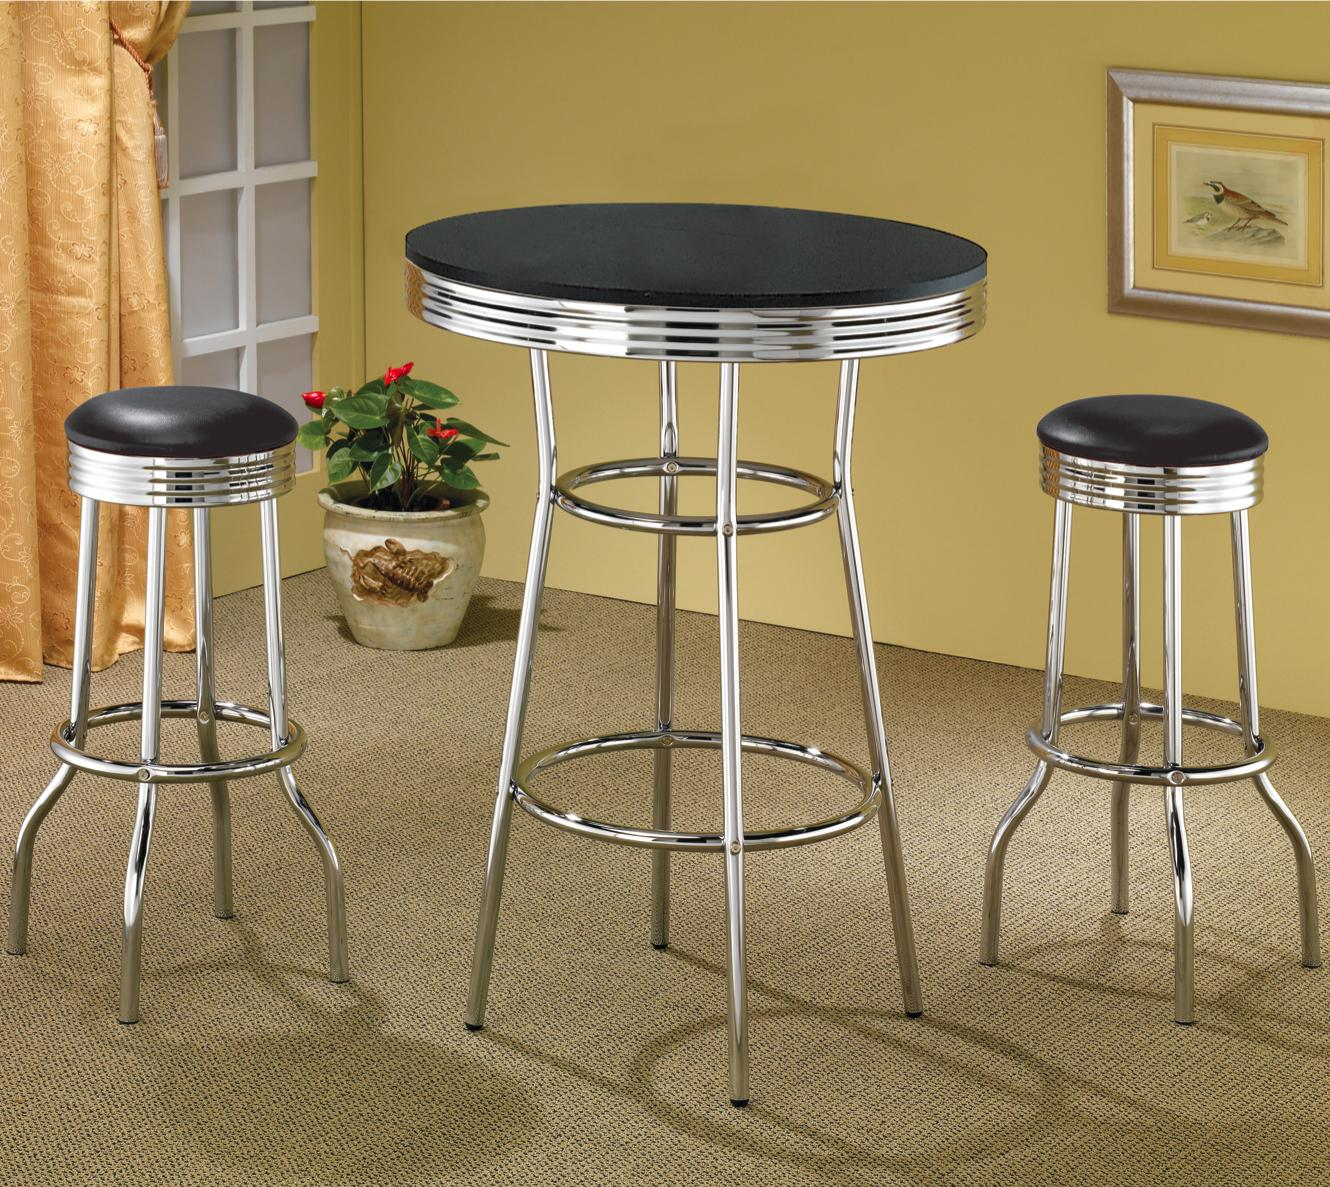 Coaster Cleveland Round Chrome Plated Dining Table - Coaster Fine ...